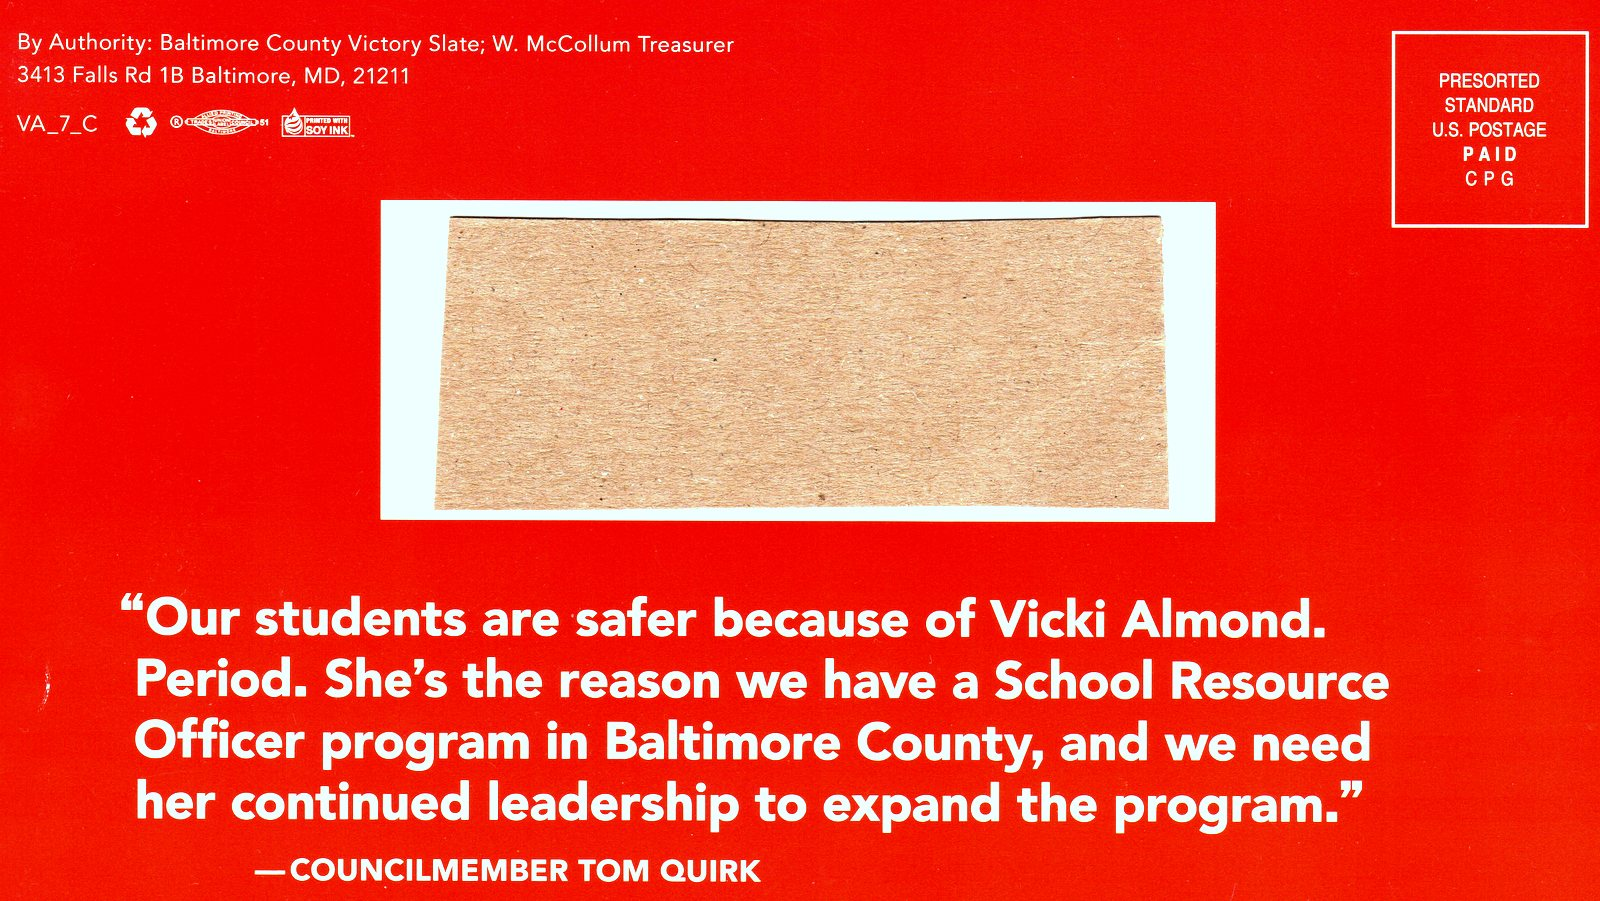 The Victory Slate authorized and financed the latest mailer in support of Vicki Almond. The committee used as its address the residence of its treasurer. (BCVS)